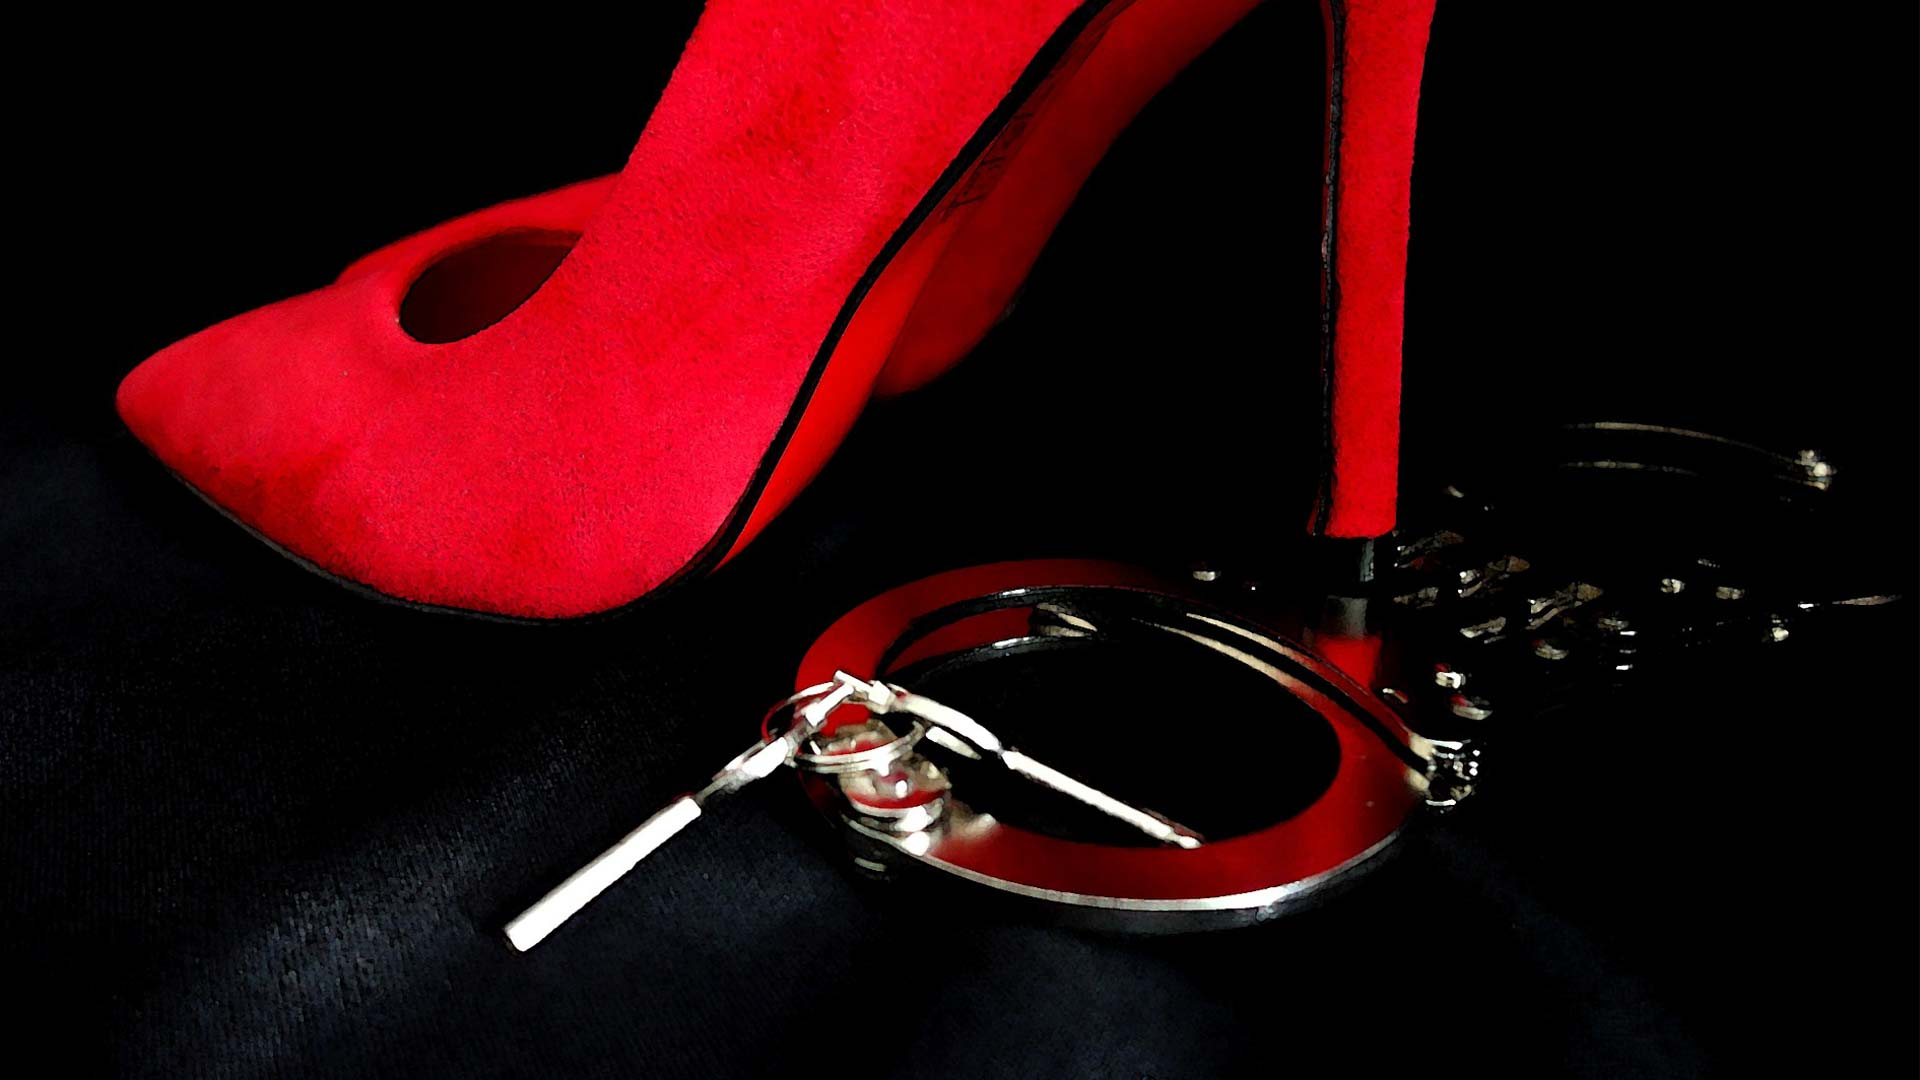 Red high heels and handcuffs